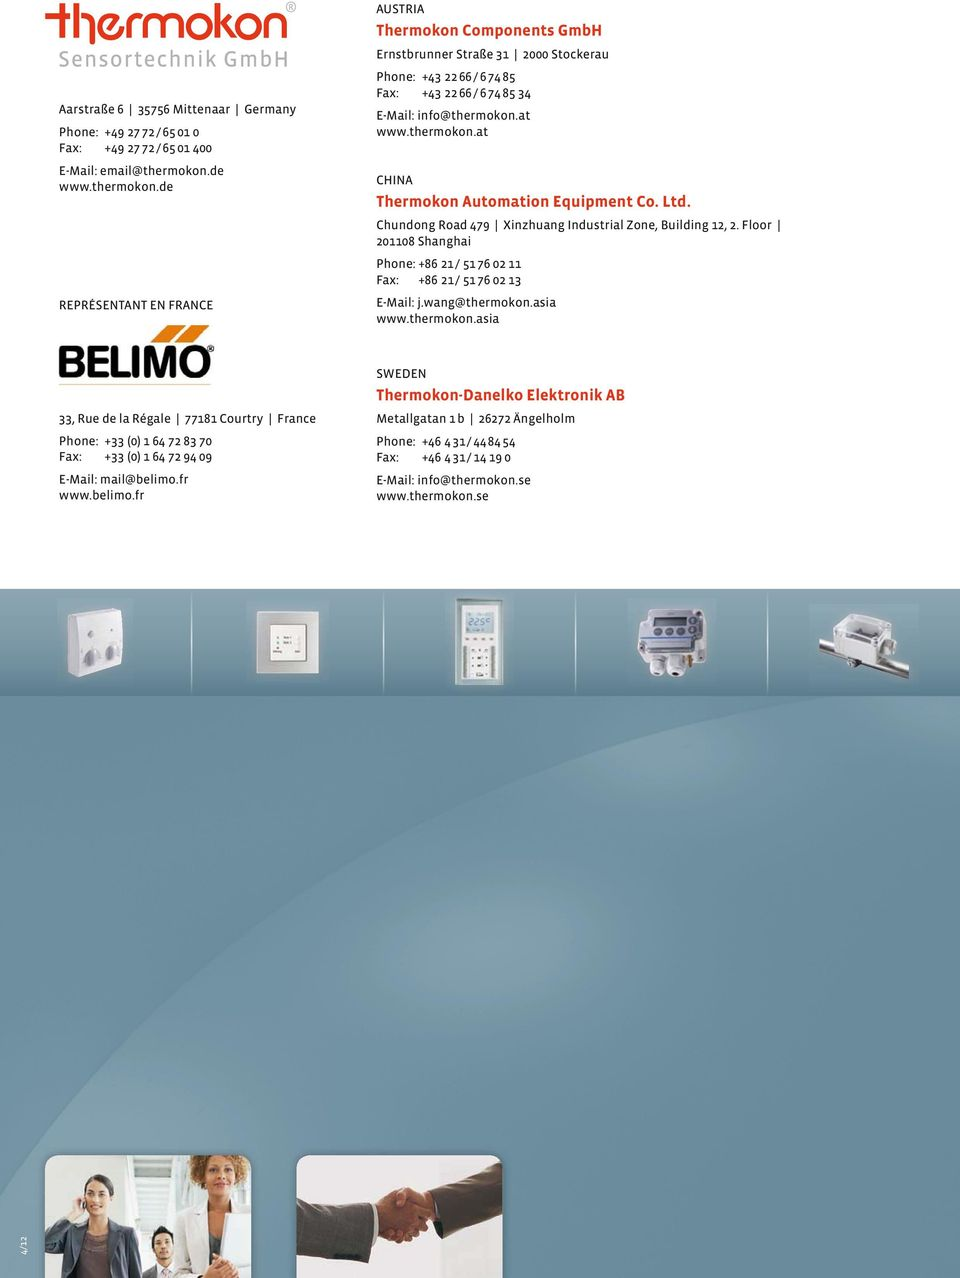 thermokon.at CHINA Thermokon Automation Equipment Co. Ltd. Chundong Road 479 Xinzhuang Industrial Zone, Building 12, 2.